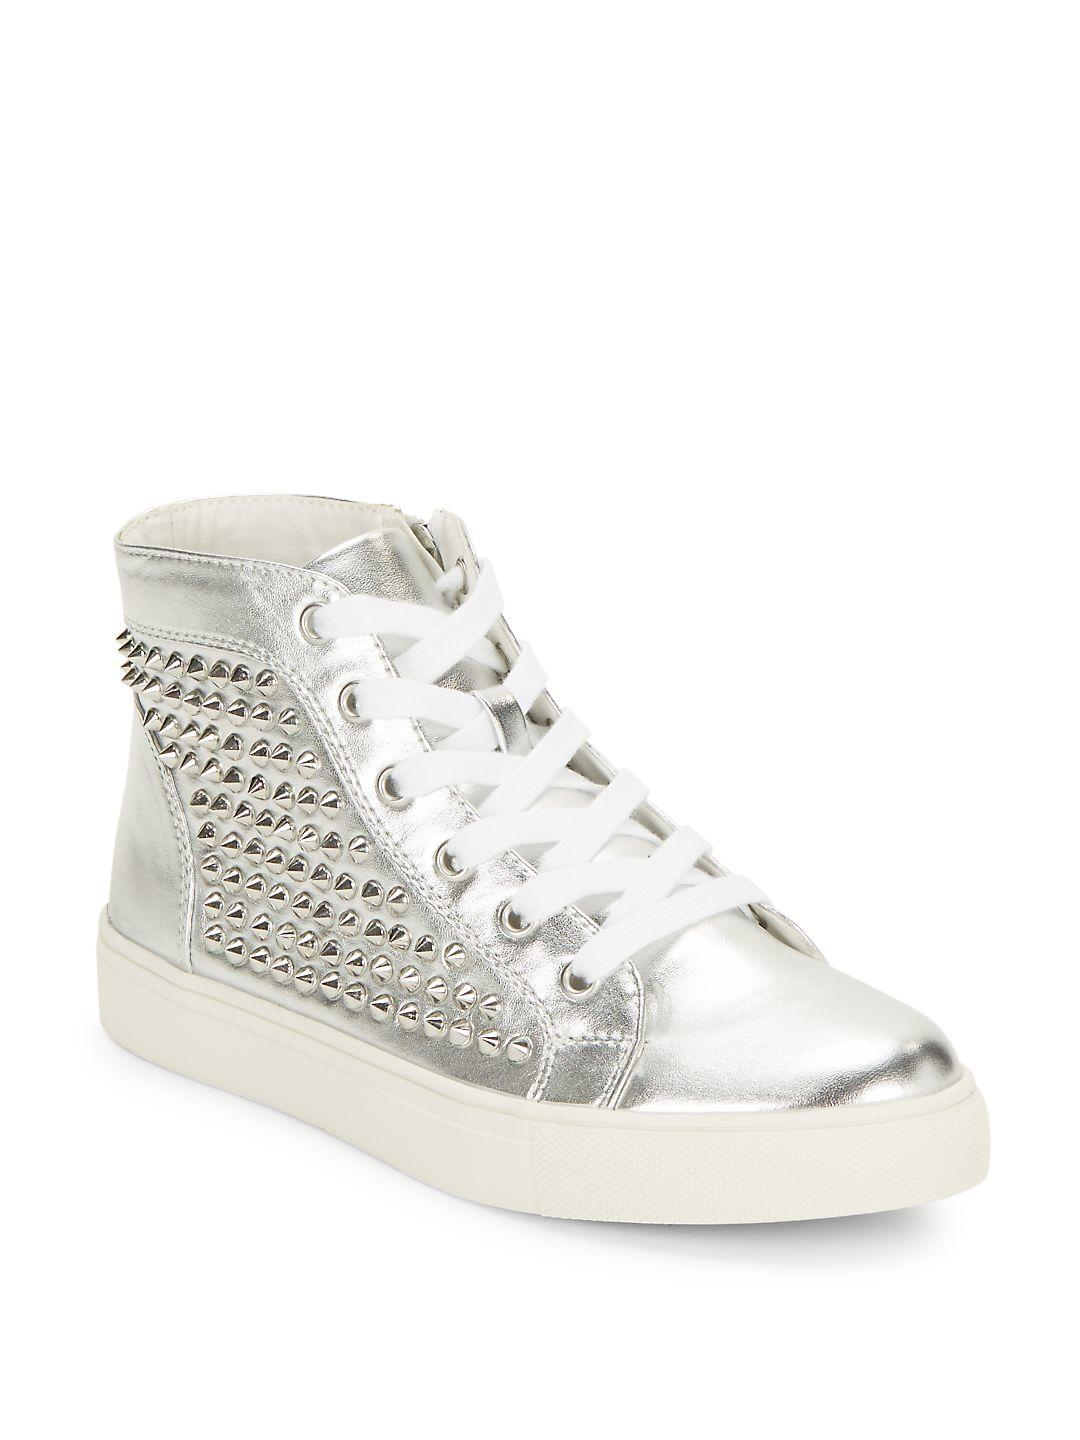 Steve Madden Levine Studded High-top Sneakers in Silver (Metallic)